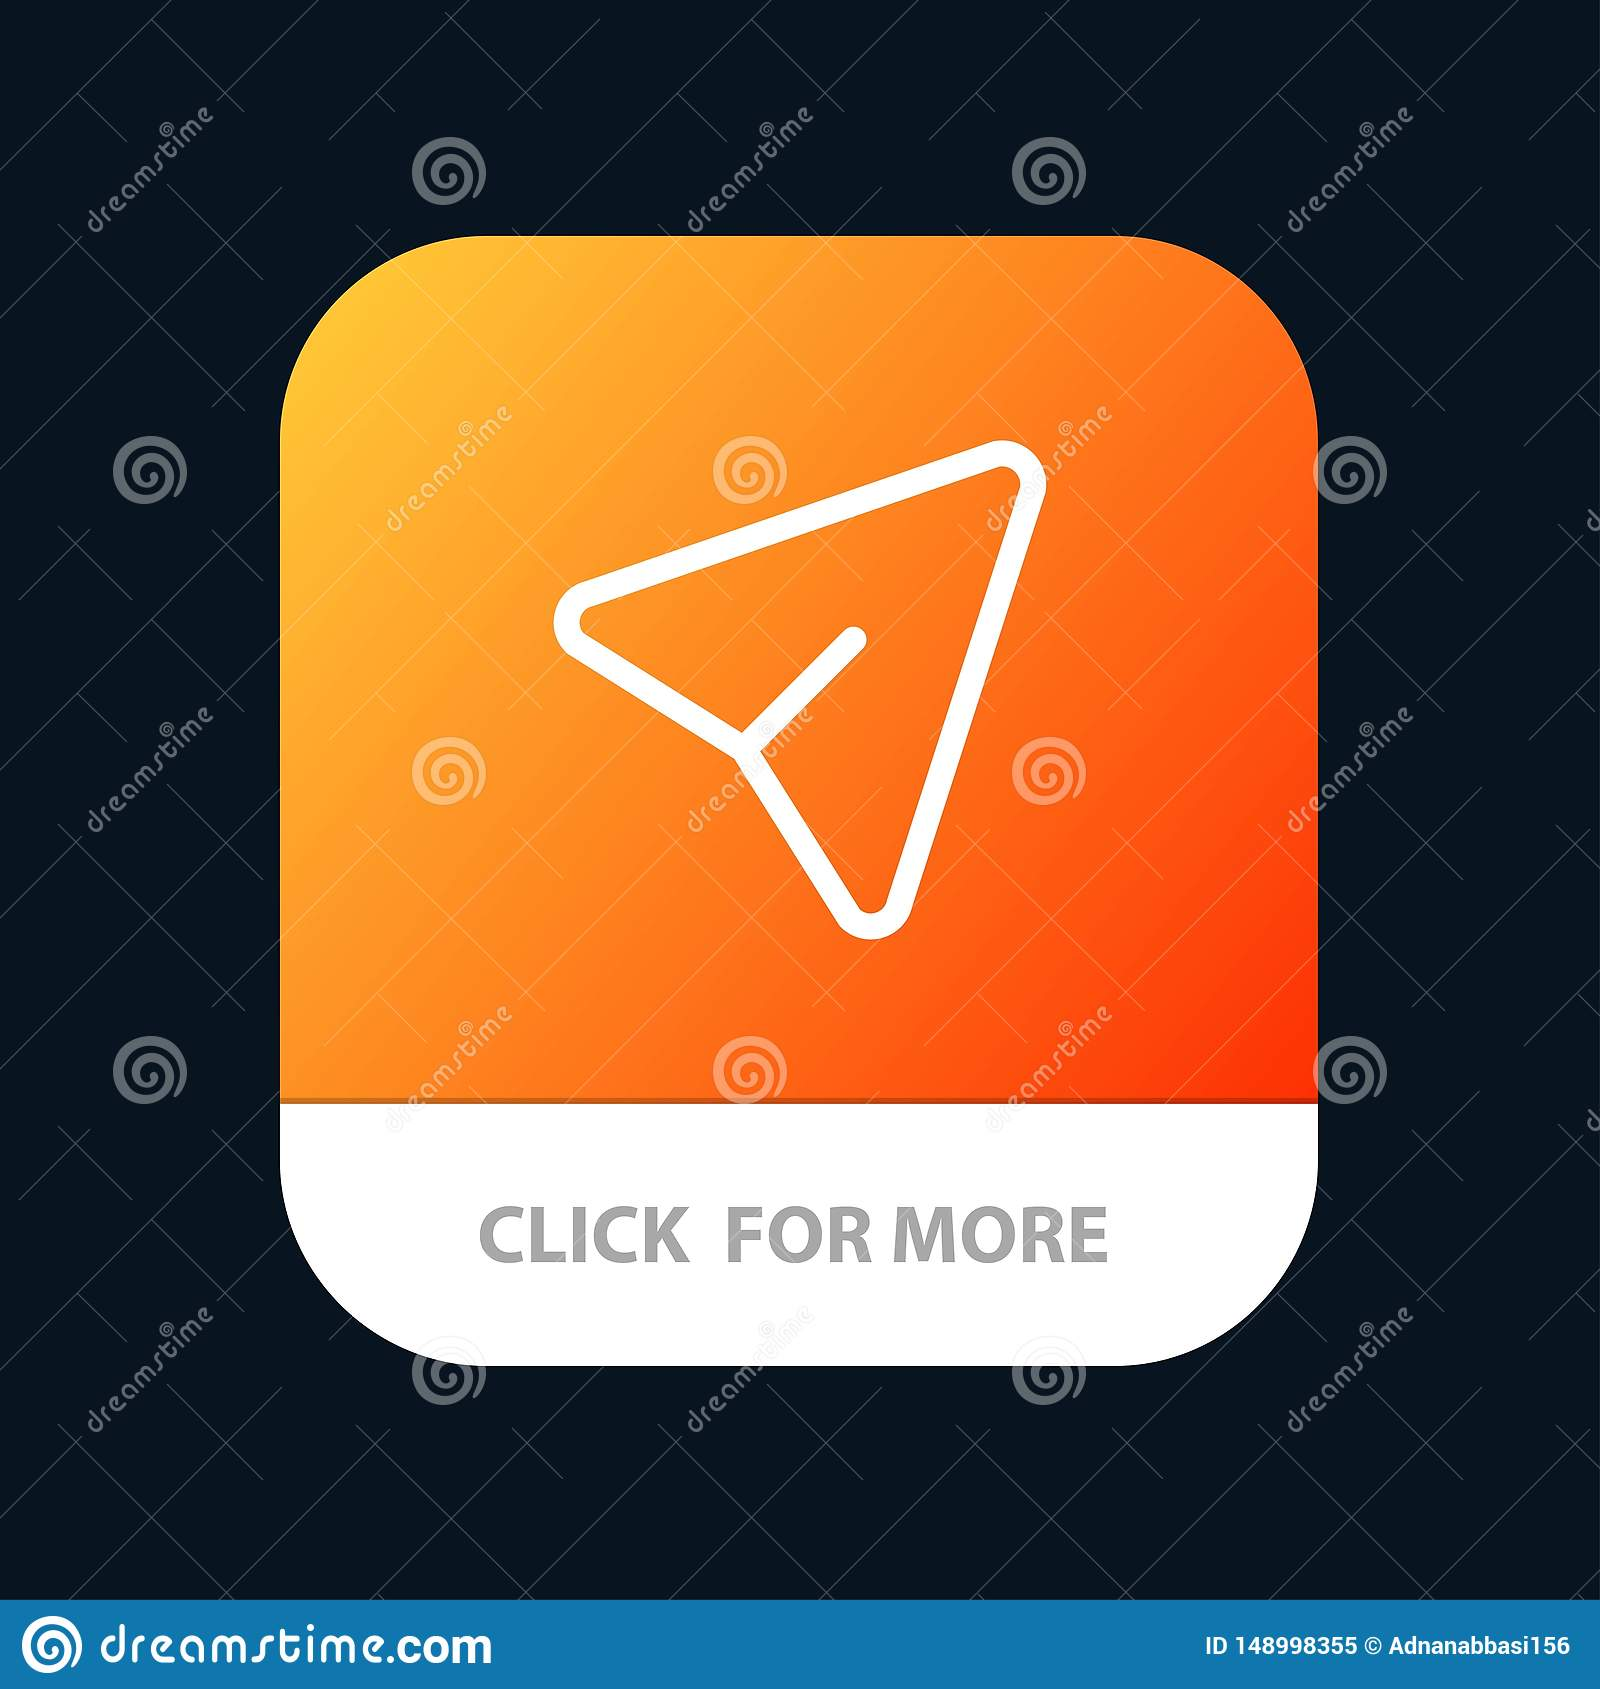 Arrow, Pin, Mouse, Computer Mobile App Button  Android And